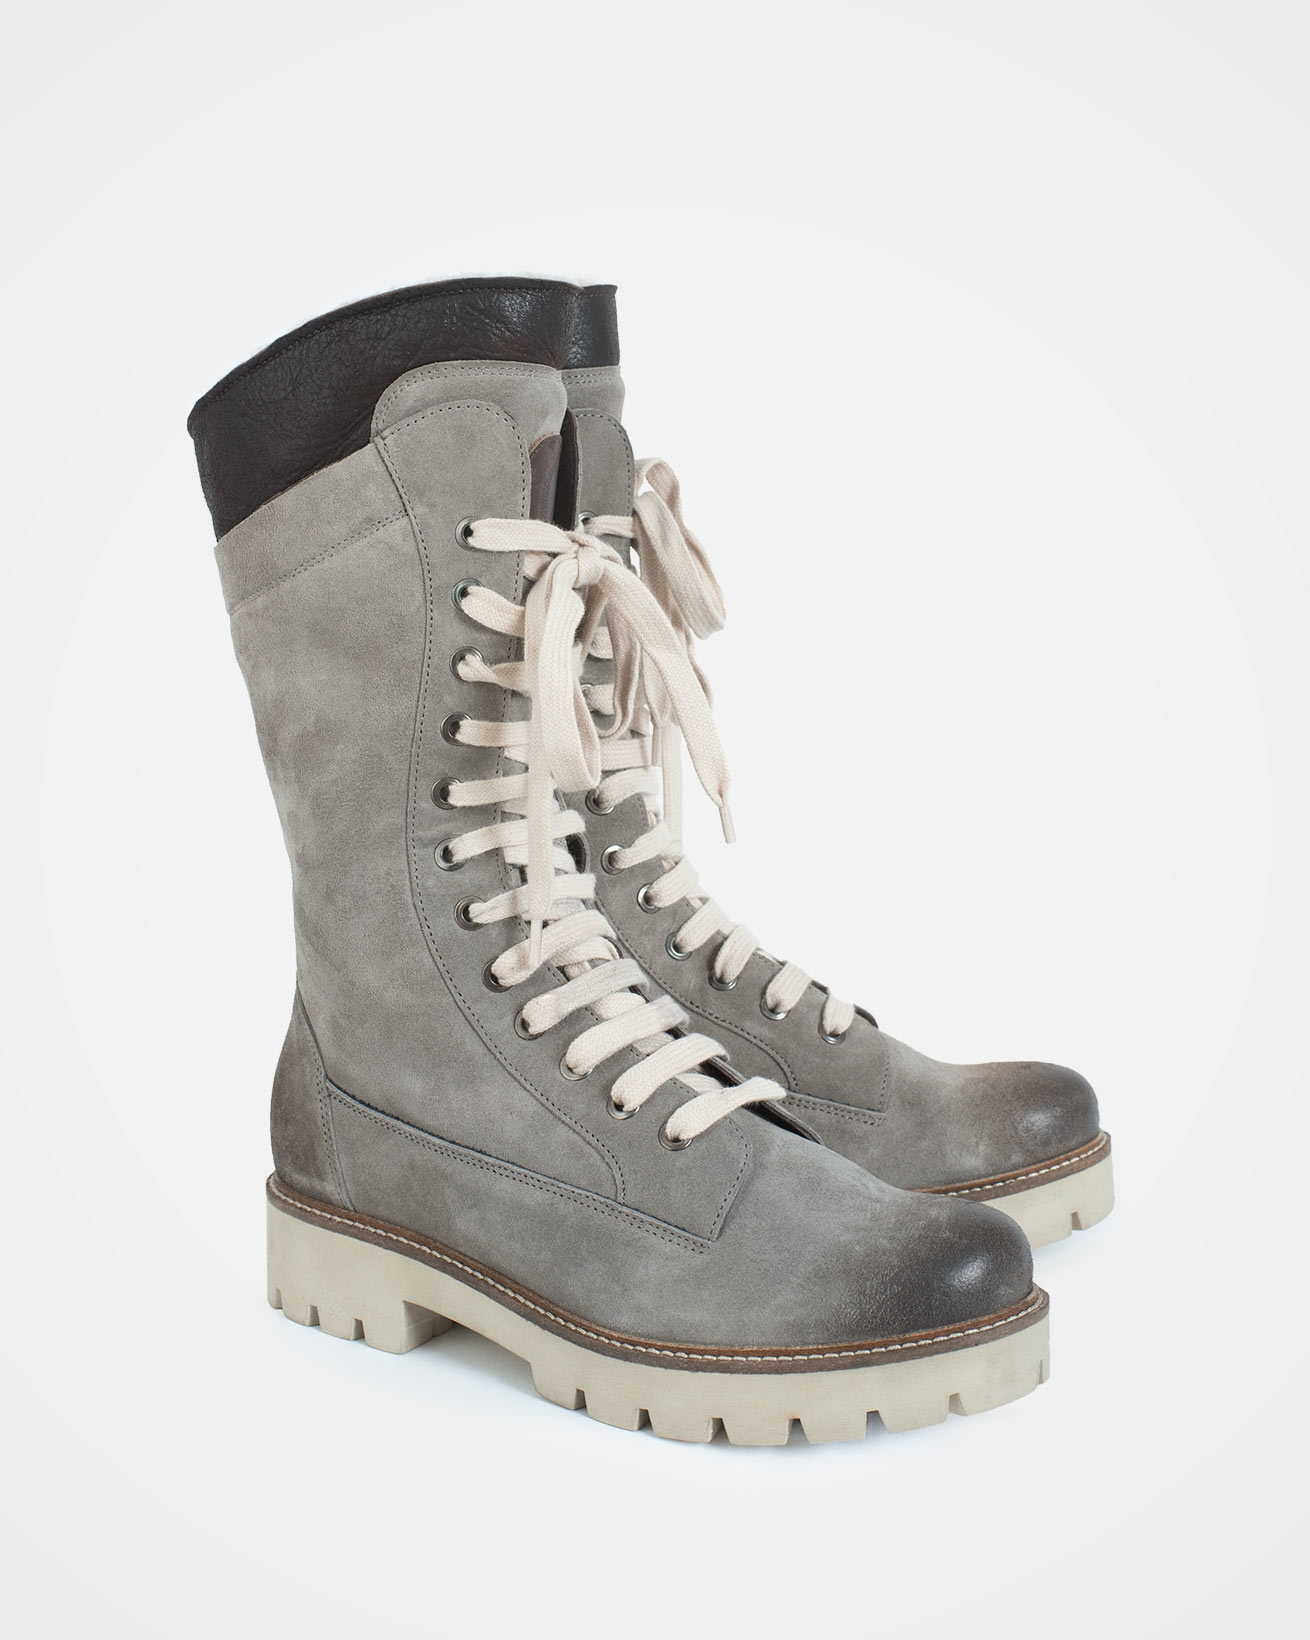 7637_boxer-boot_soft-grey_pair.jpg